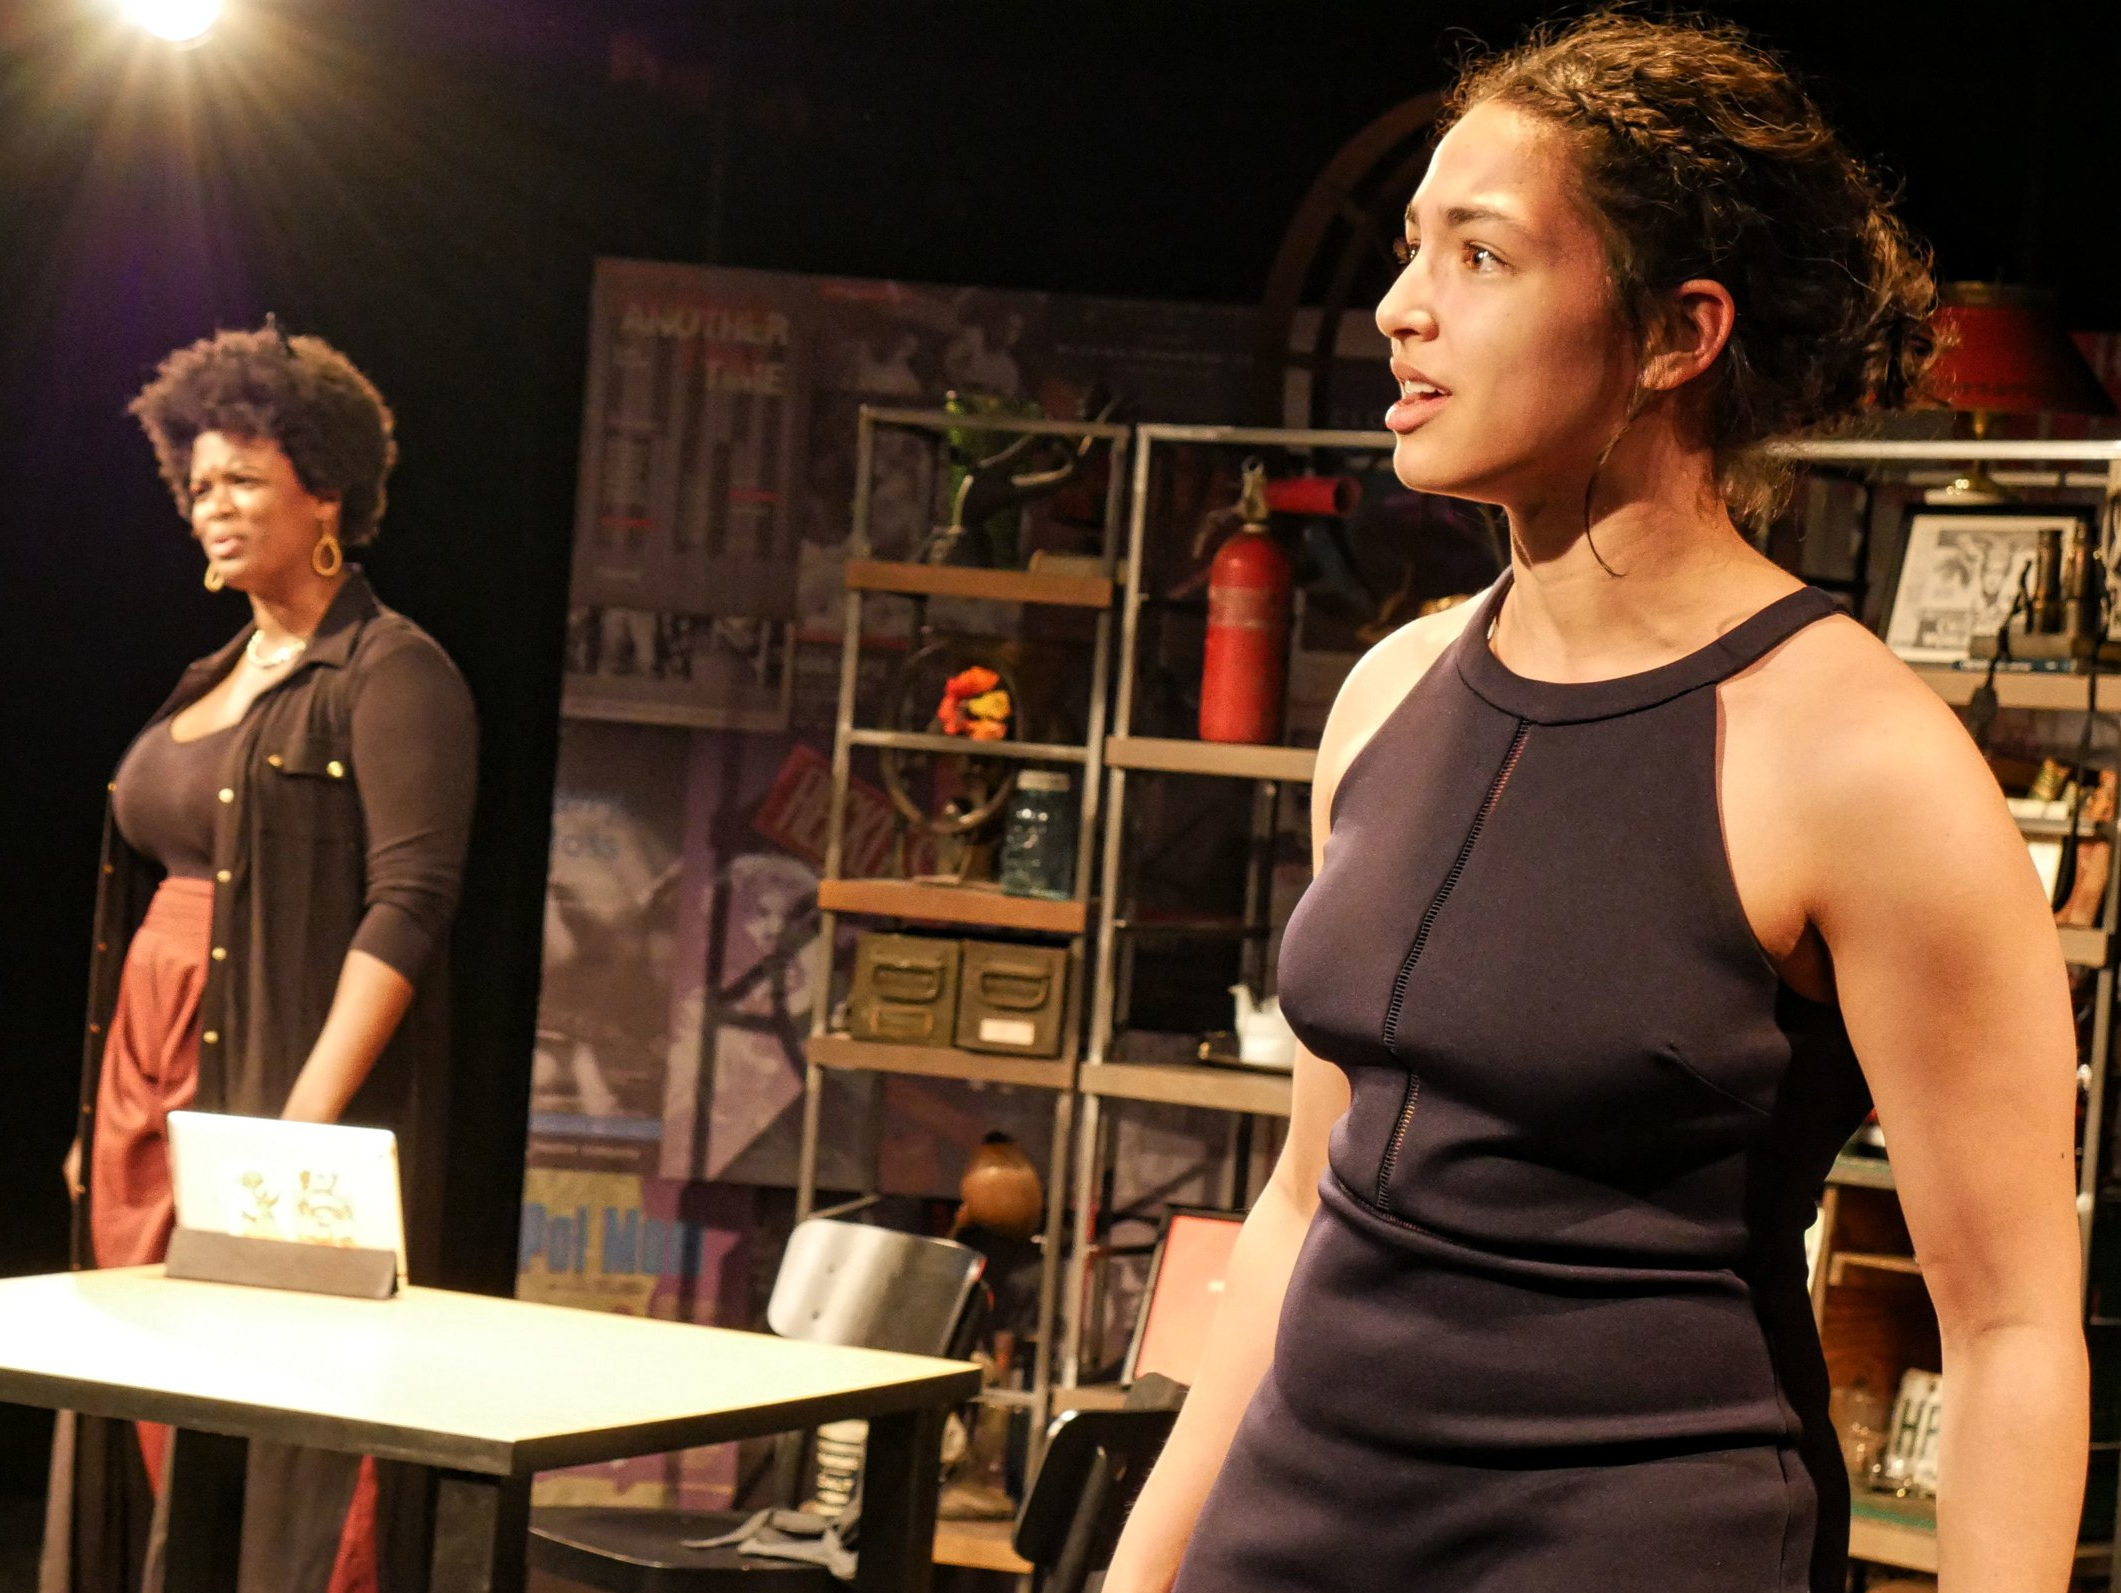 """For the Culture"" from    Bechdel Fest 7: Revolution    at    Steppenwolf Theatre's 1700    space. (Photo by Spenser Davis)"